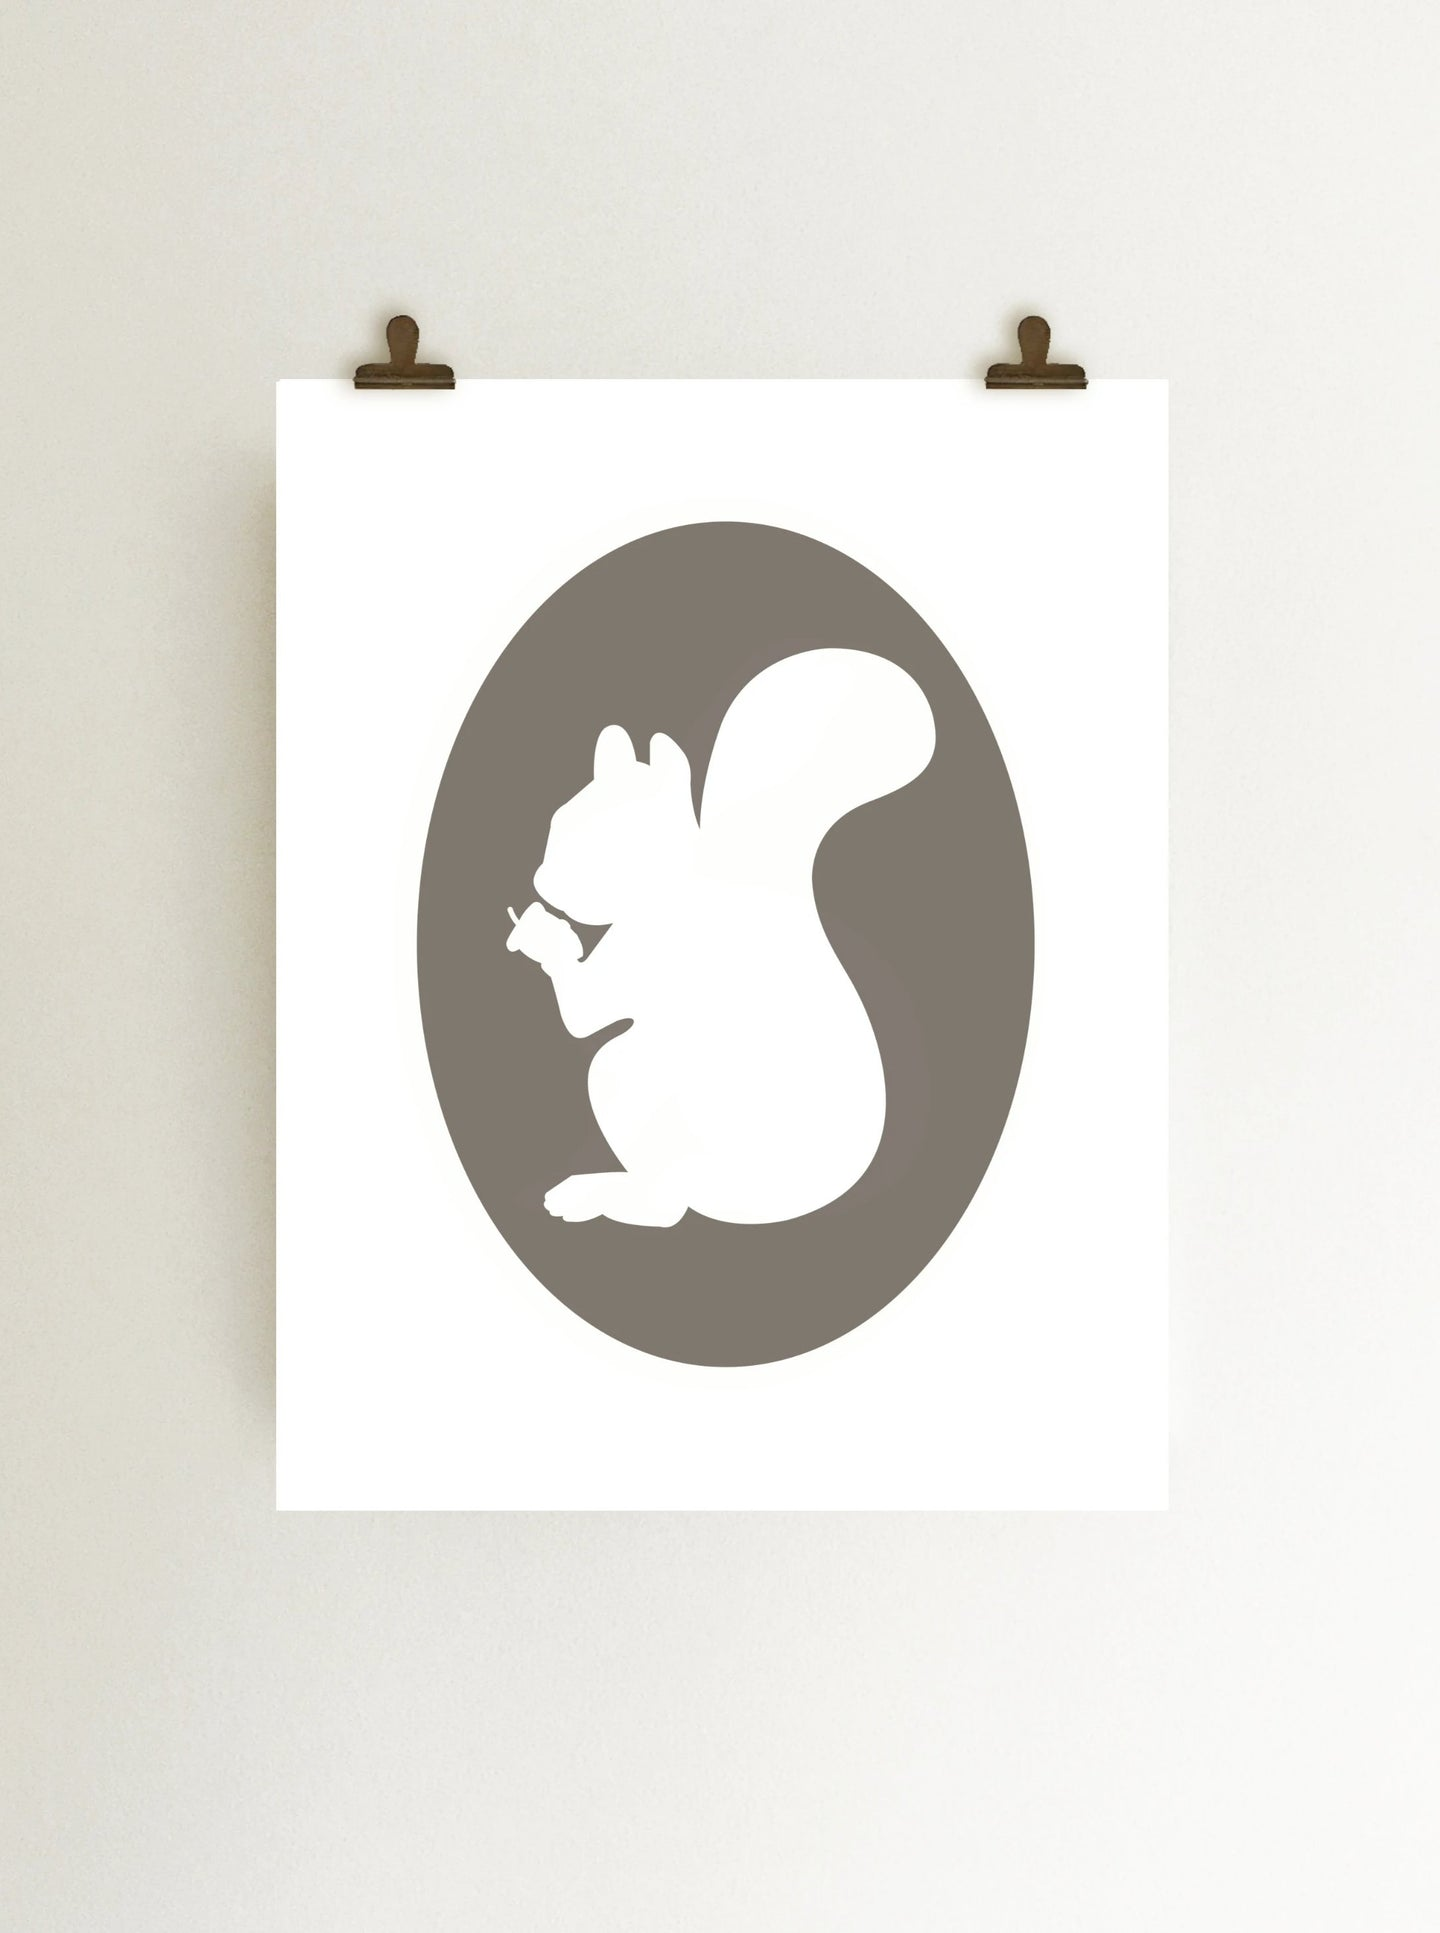 Gray squirrel holding acorn cameo art print, giclee on white fine art print paper shown hanging on wall from clips